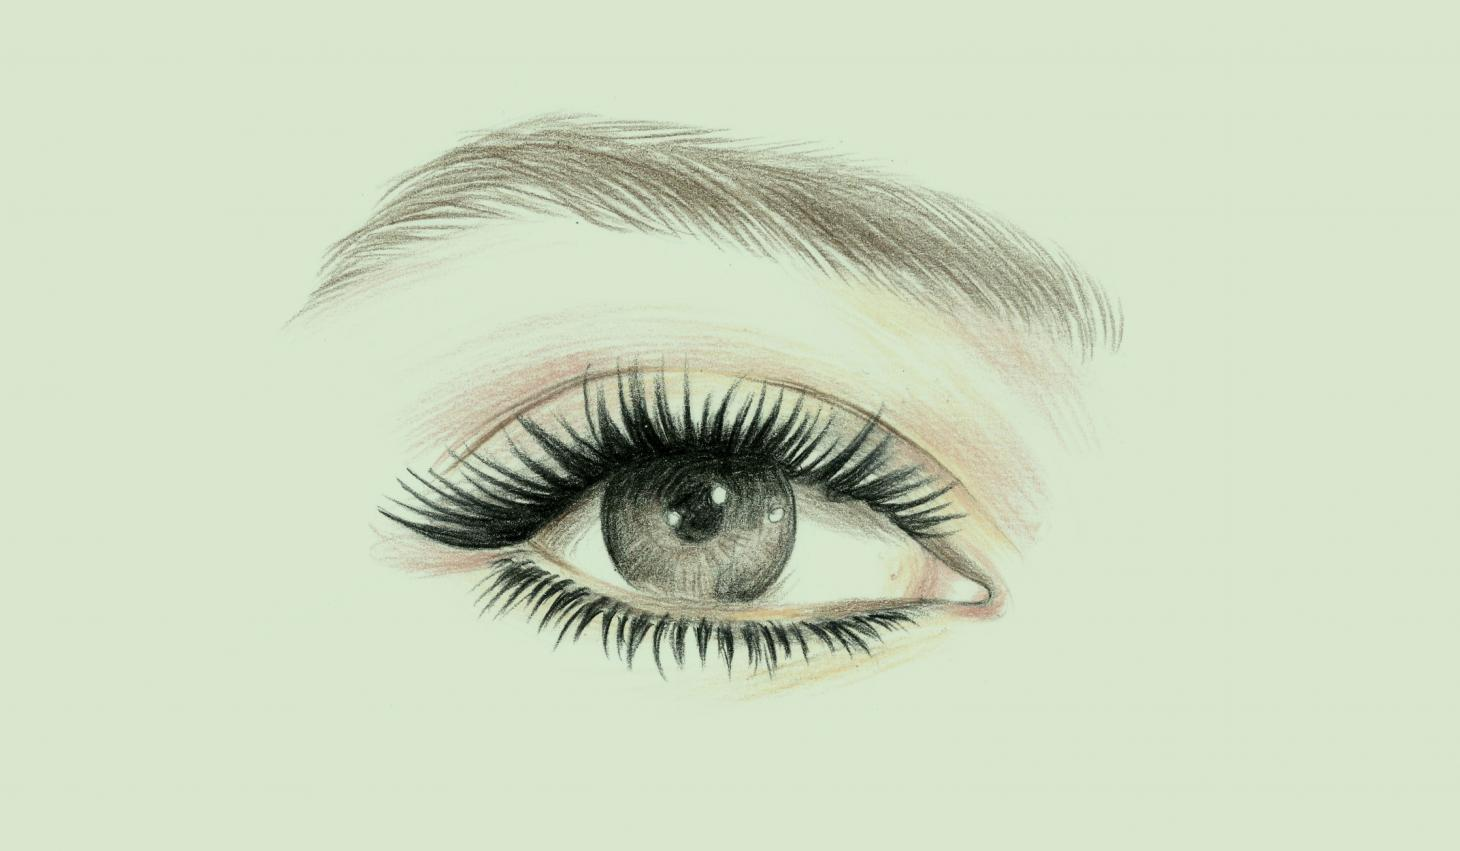 illustrated eye on a green background